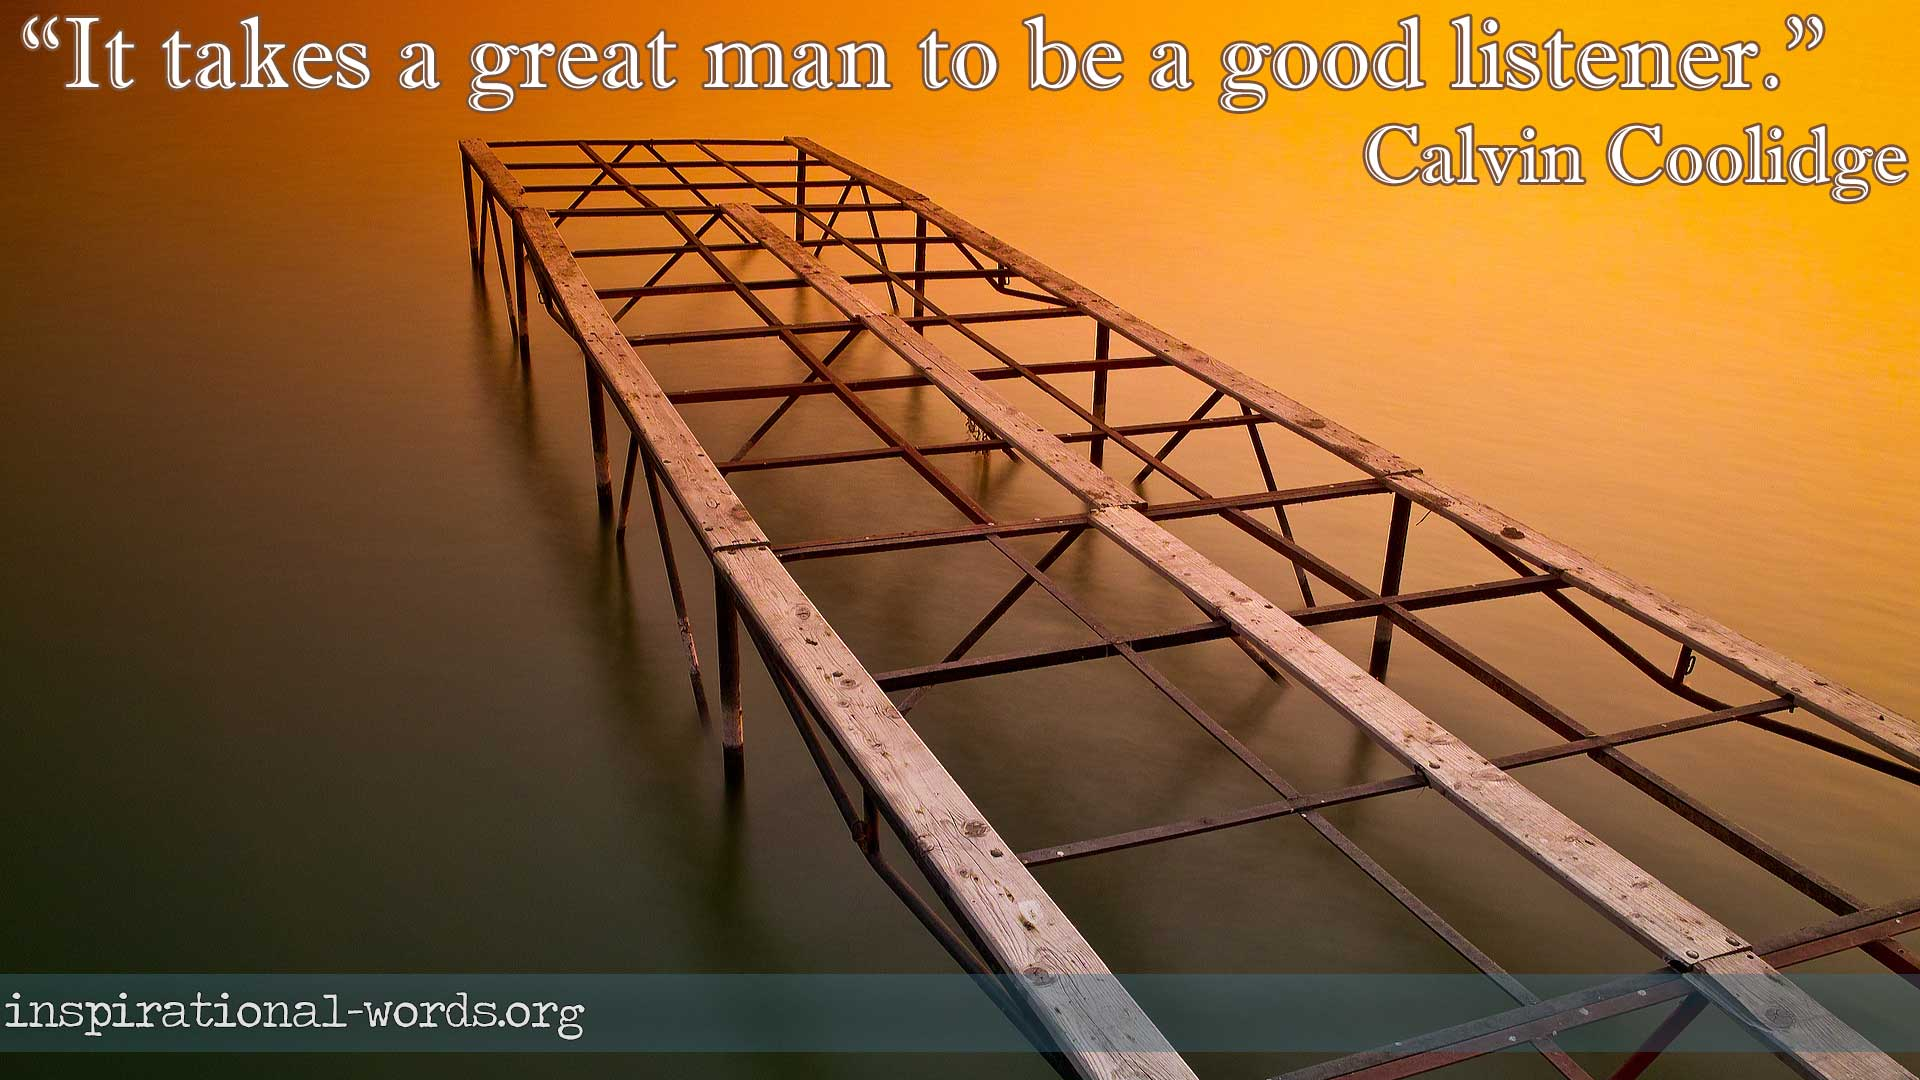 calvin coolidge inspirational wallpaper